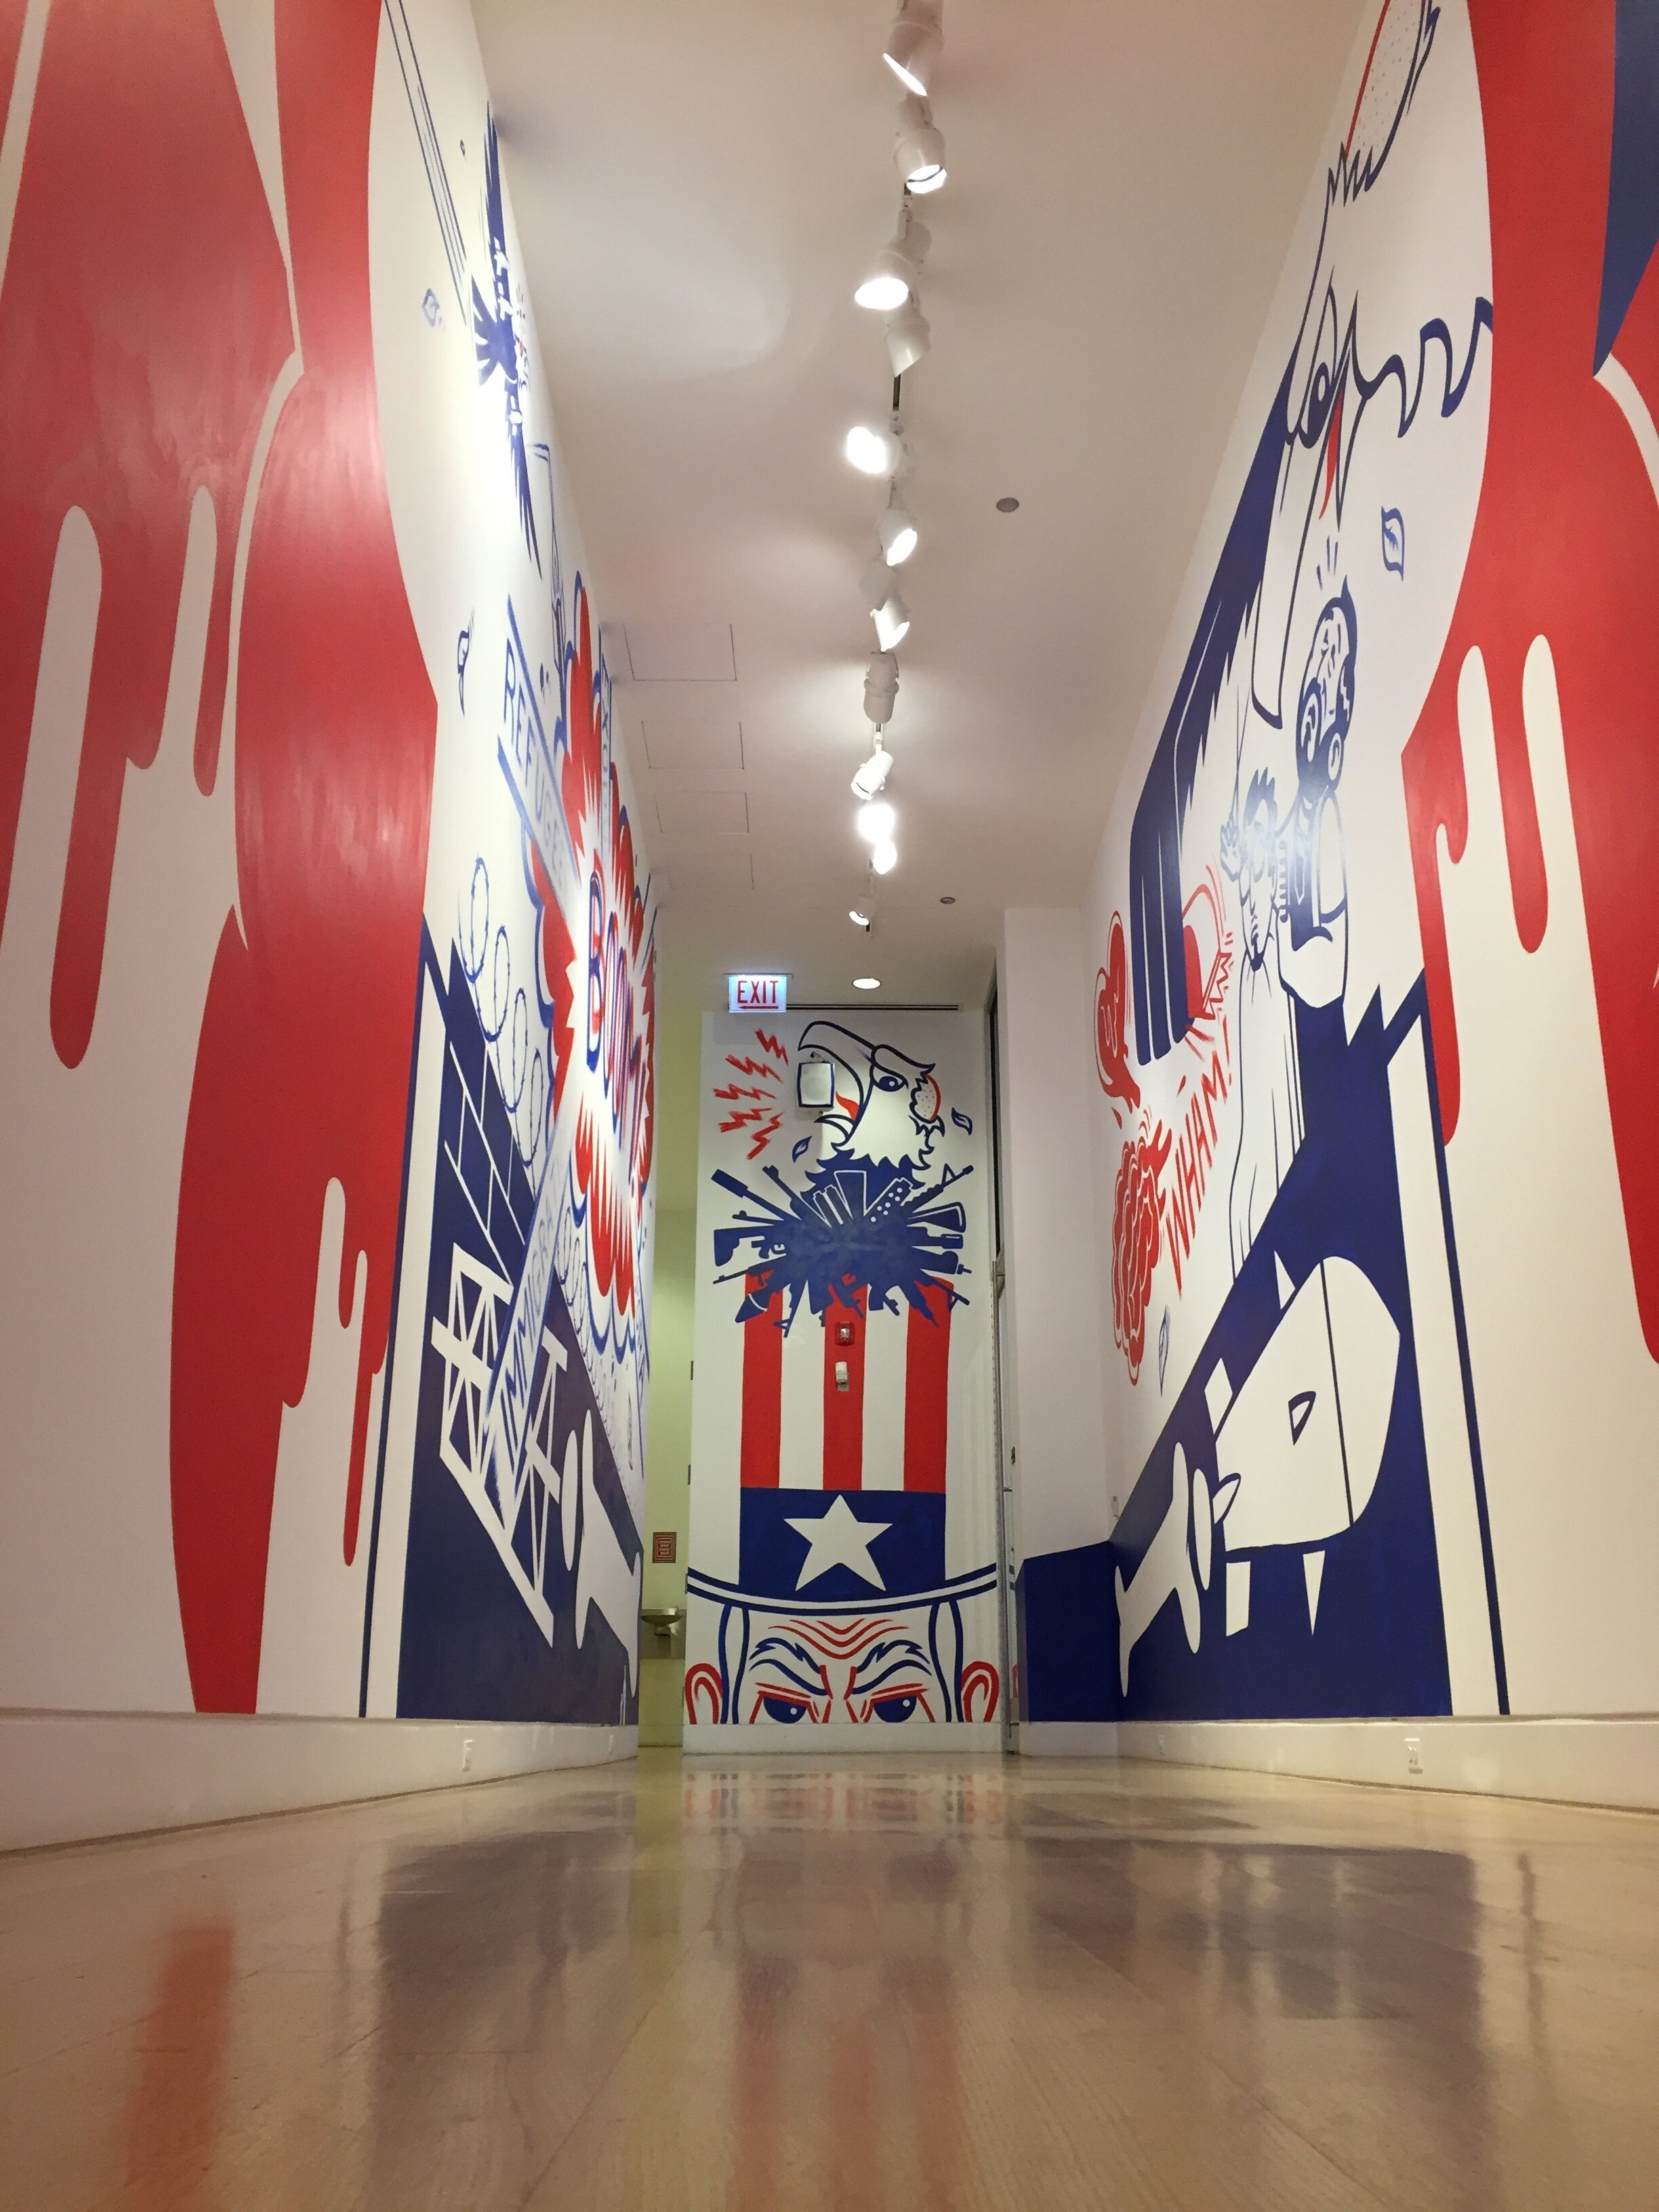 The Bald Eagle's Toupee   Three wall mural: H15'xW33.99', 15'x33.9', & 15'x9'' gallery space, and audio recording by Mike Garcia. Animations by Luis Mayorga. Installation at the DePaul Art Museum. Chicago IL